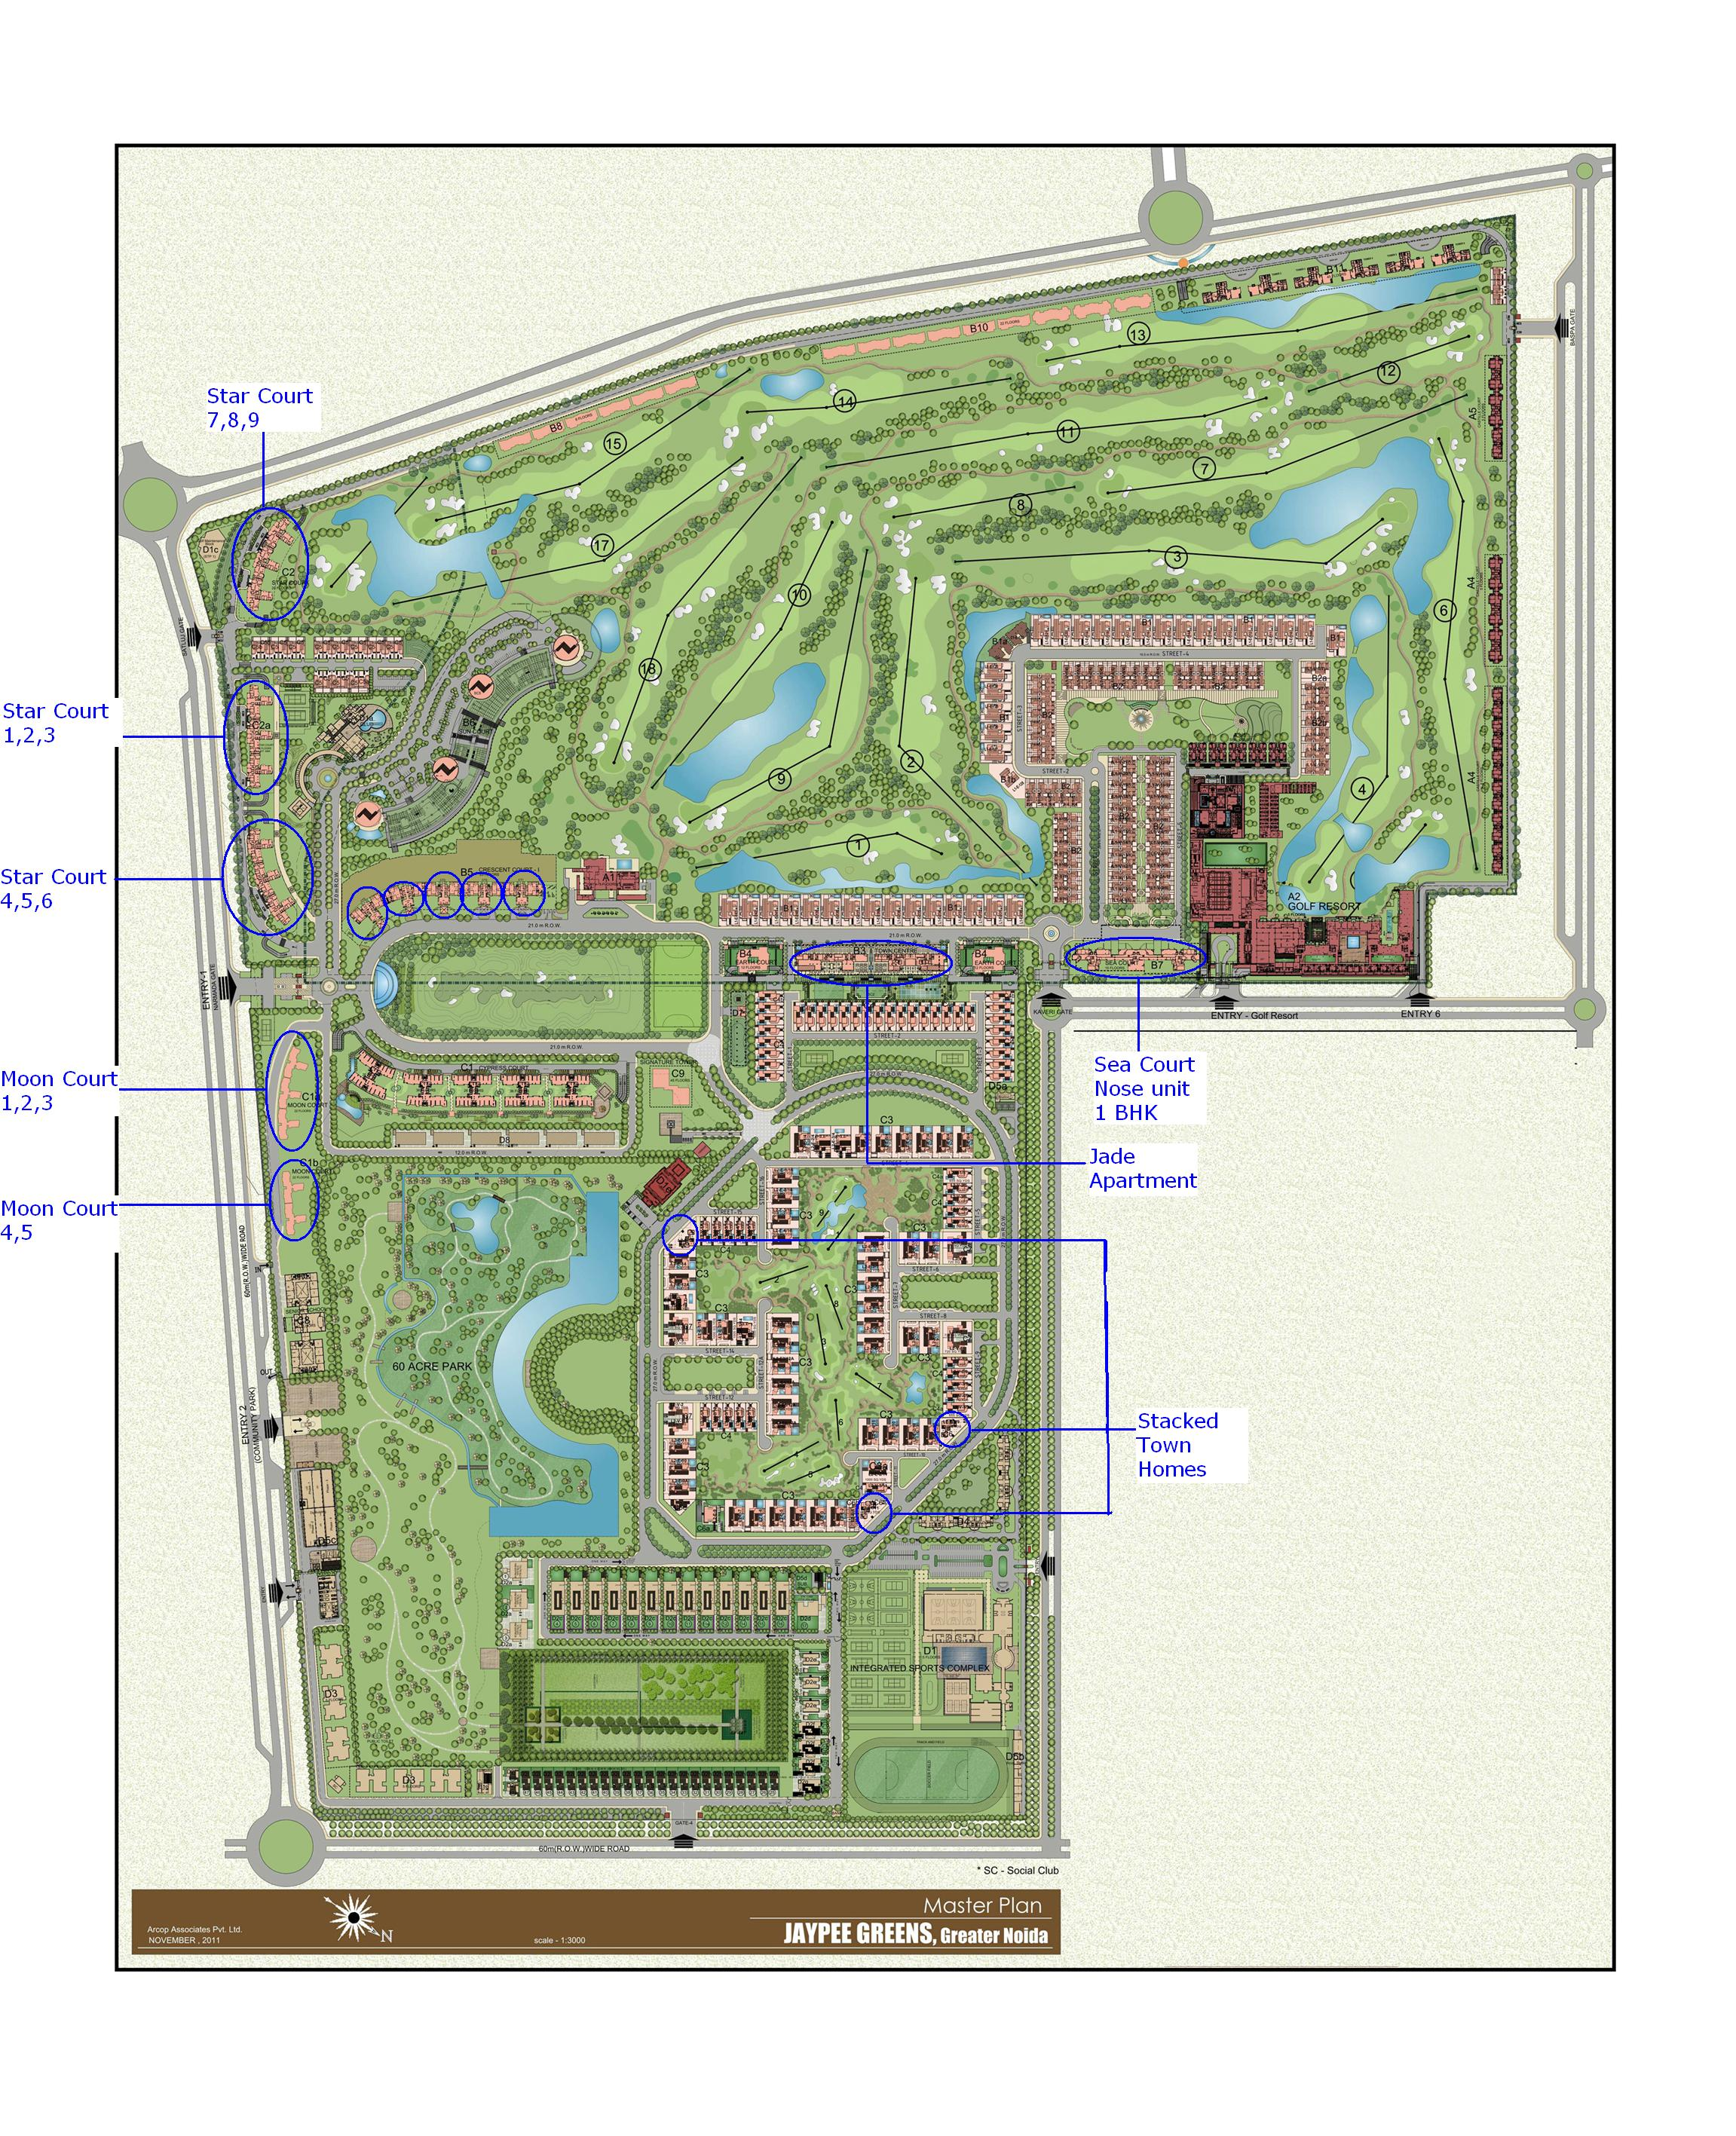 Jaypee Greens Greater Noida Master Plan